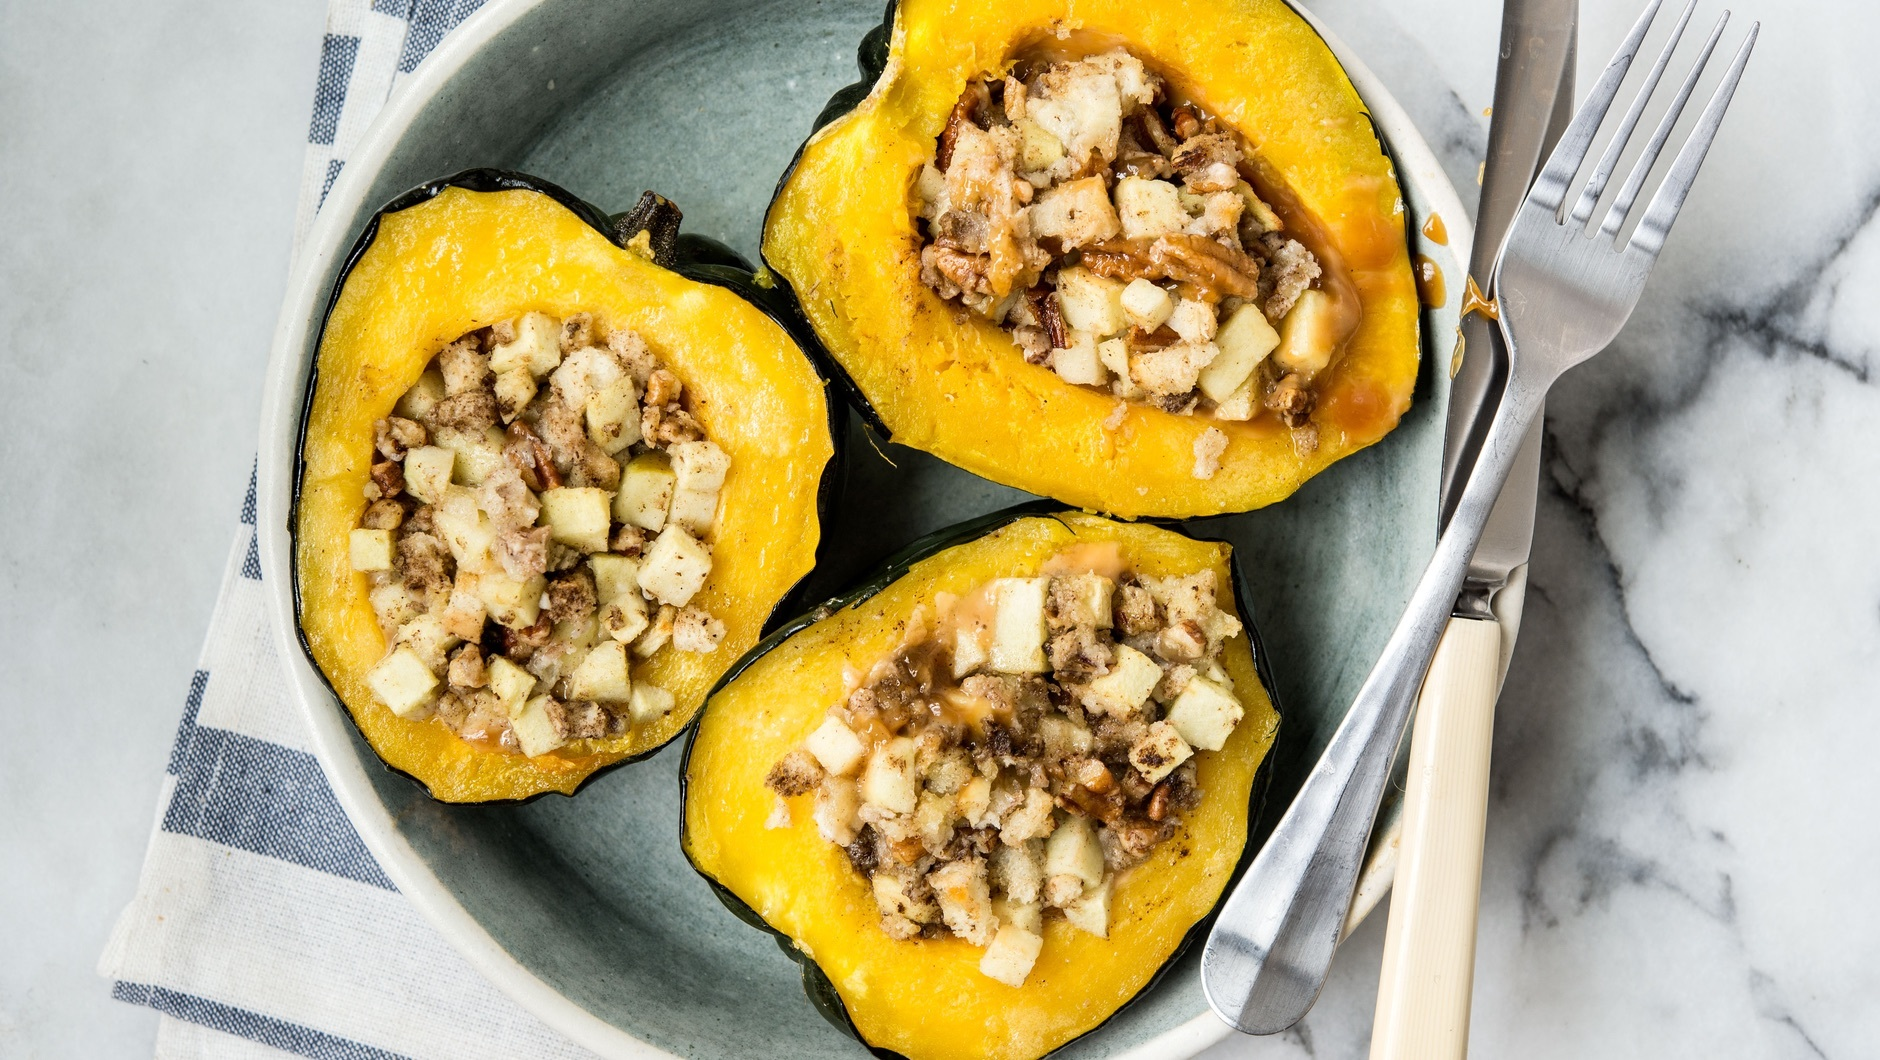 Baked Acorn Squash With Apples & Pecans Recipe - What's ...